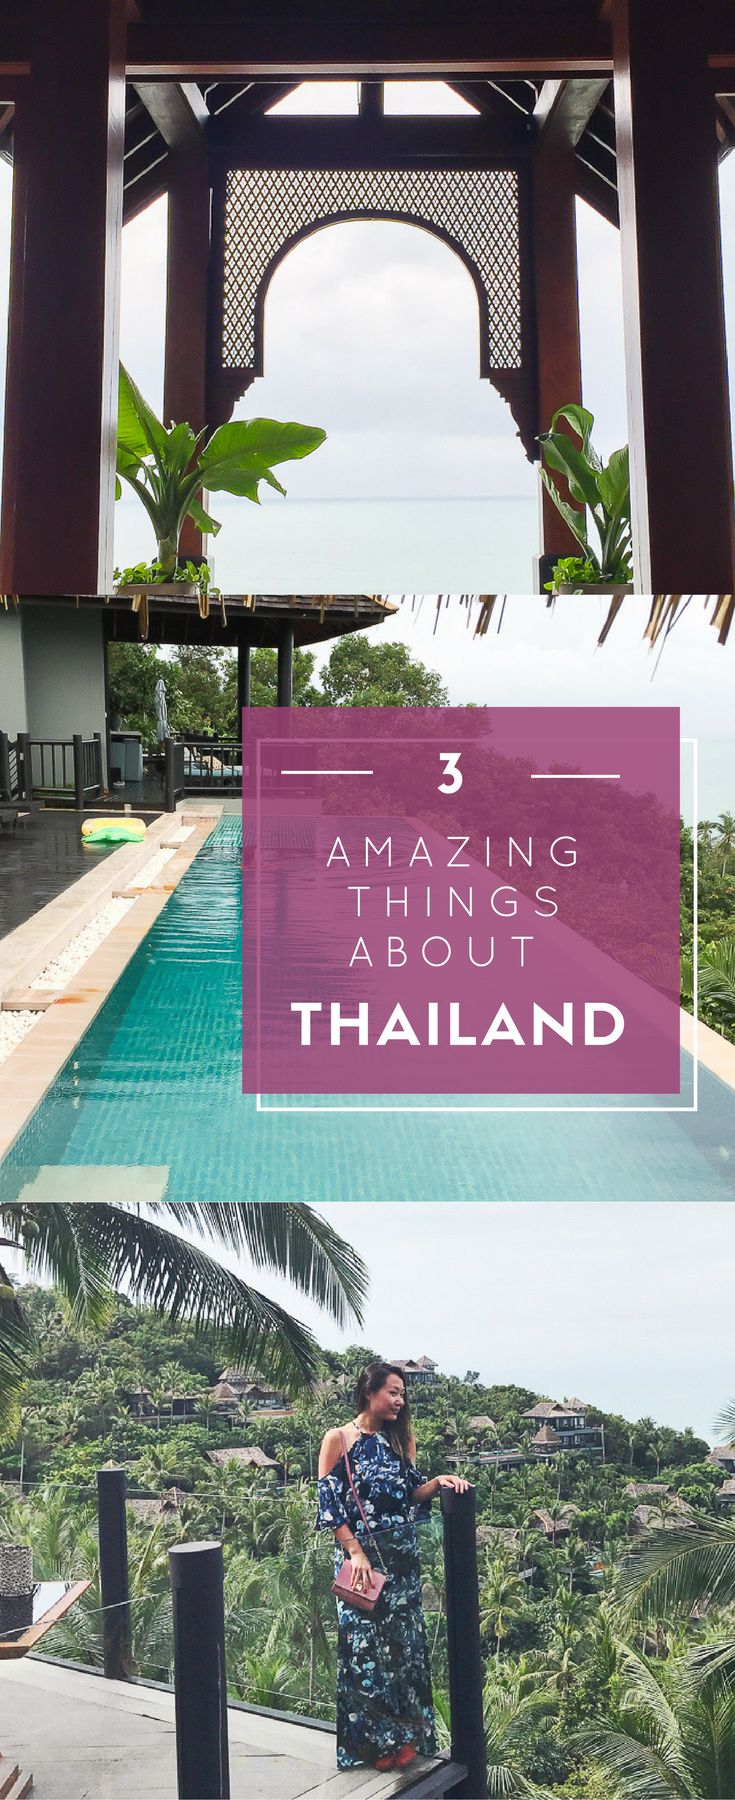 Things to do in Thailand, Thailand travel guide, Koh Samui travel guide, best Koh Samui resorts. Discover the best of Thailand on www.layersofchic.com